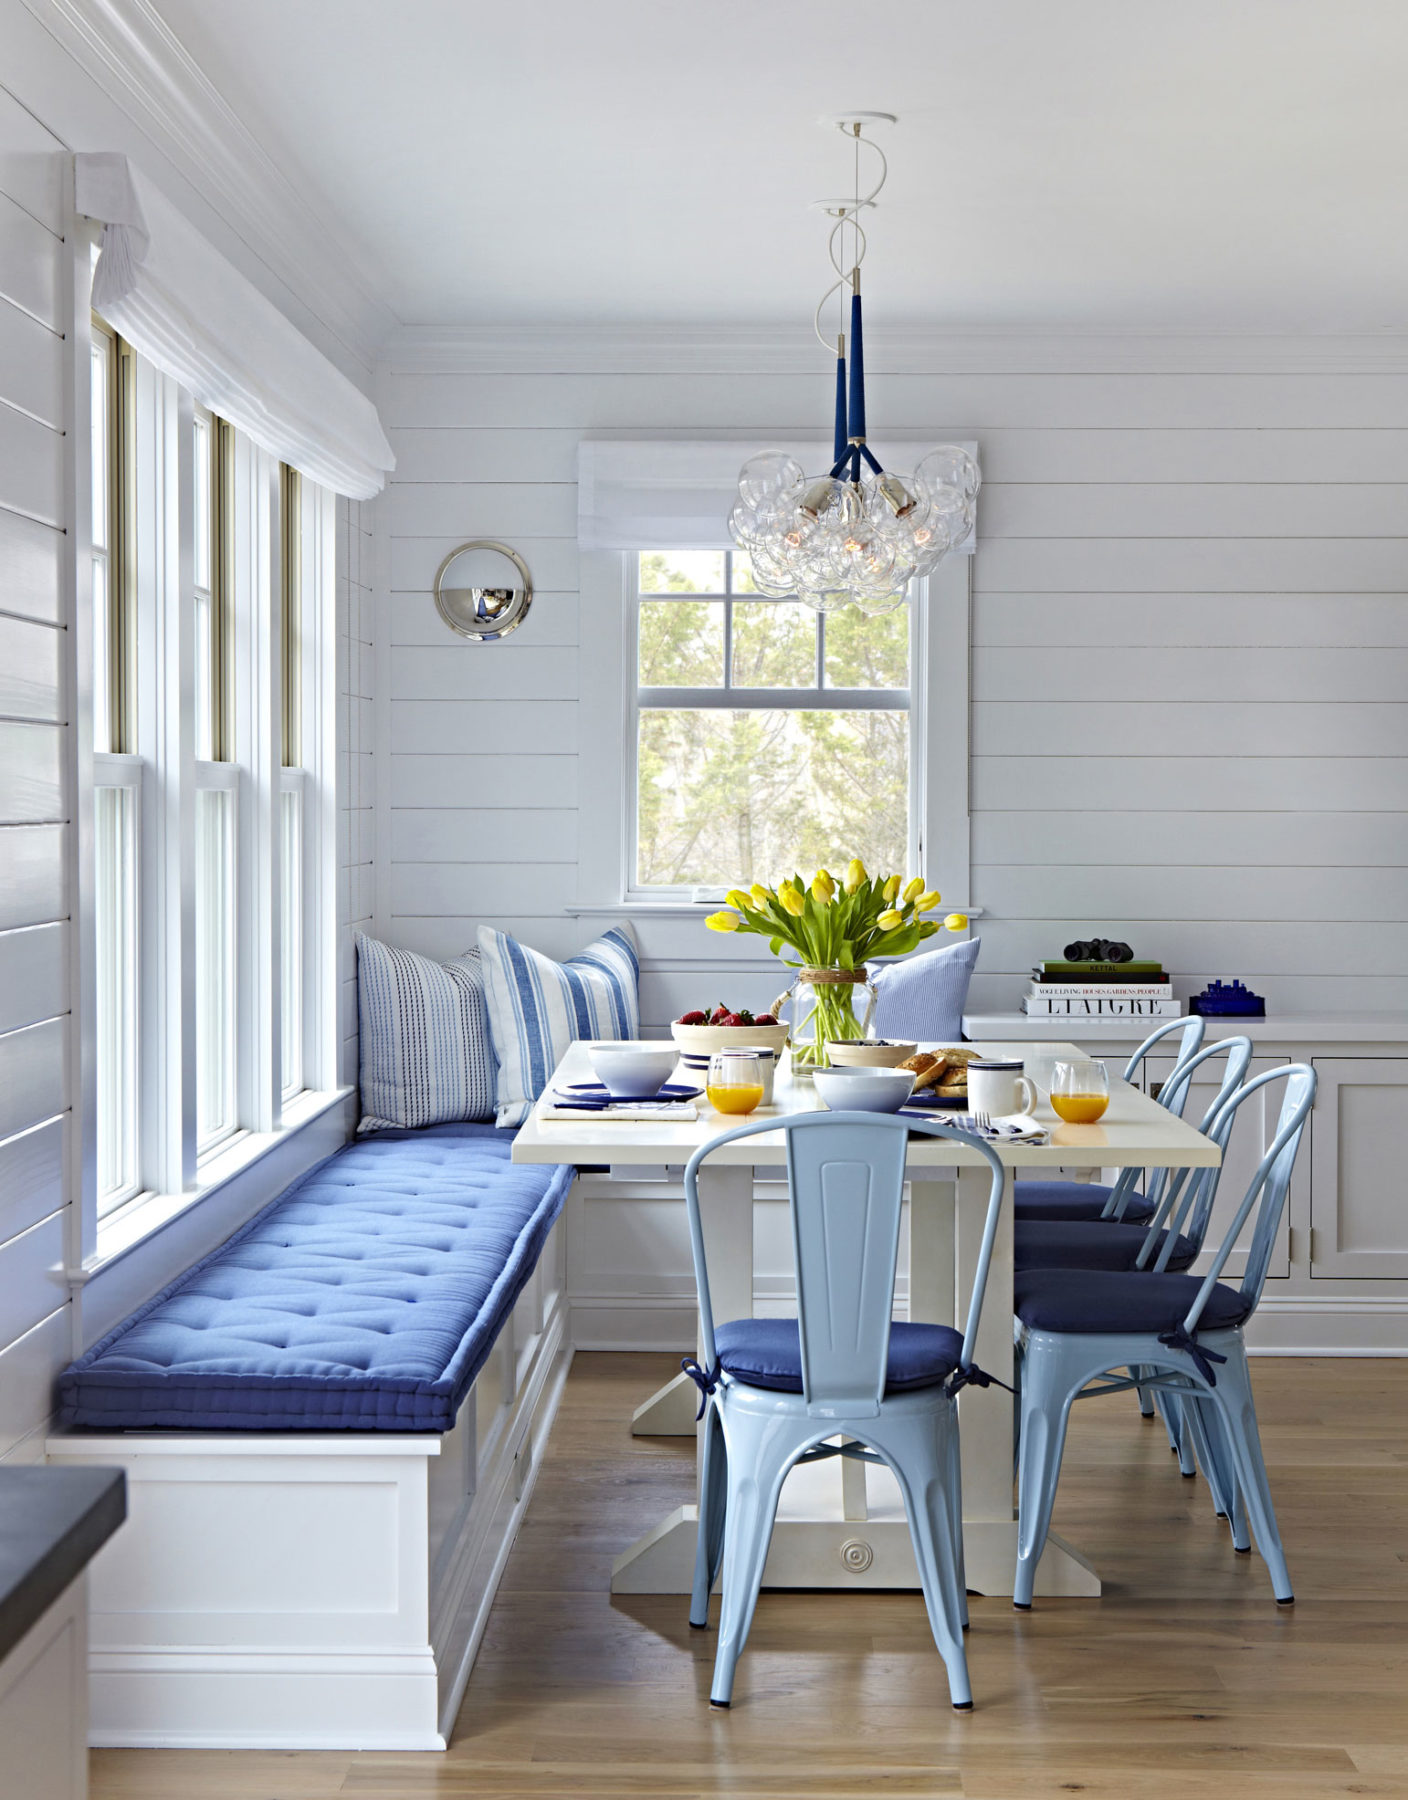 39-bay-head-beach-bungalow-by-chango-co-dining-nook-front-view